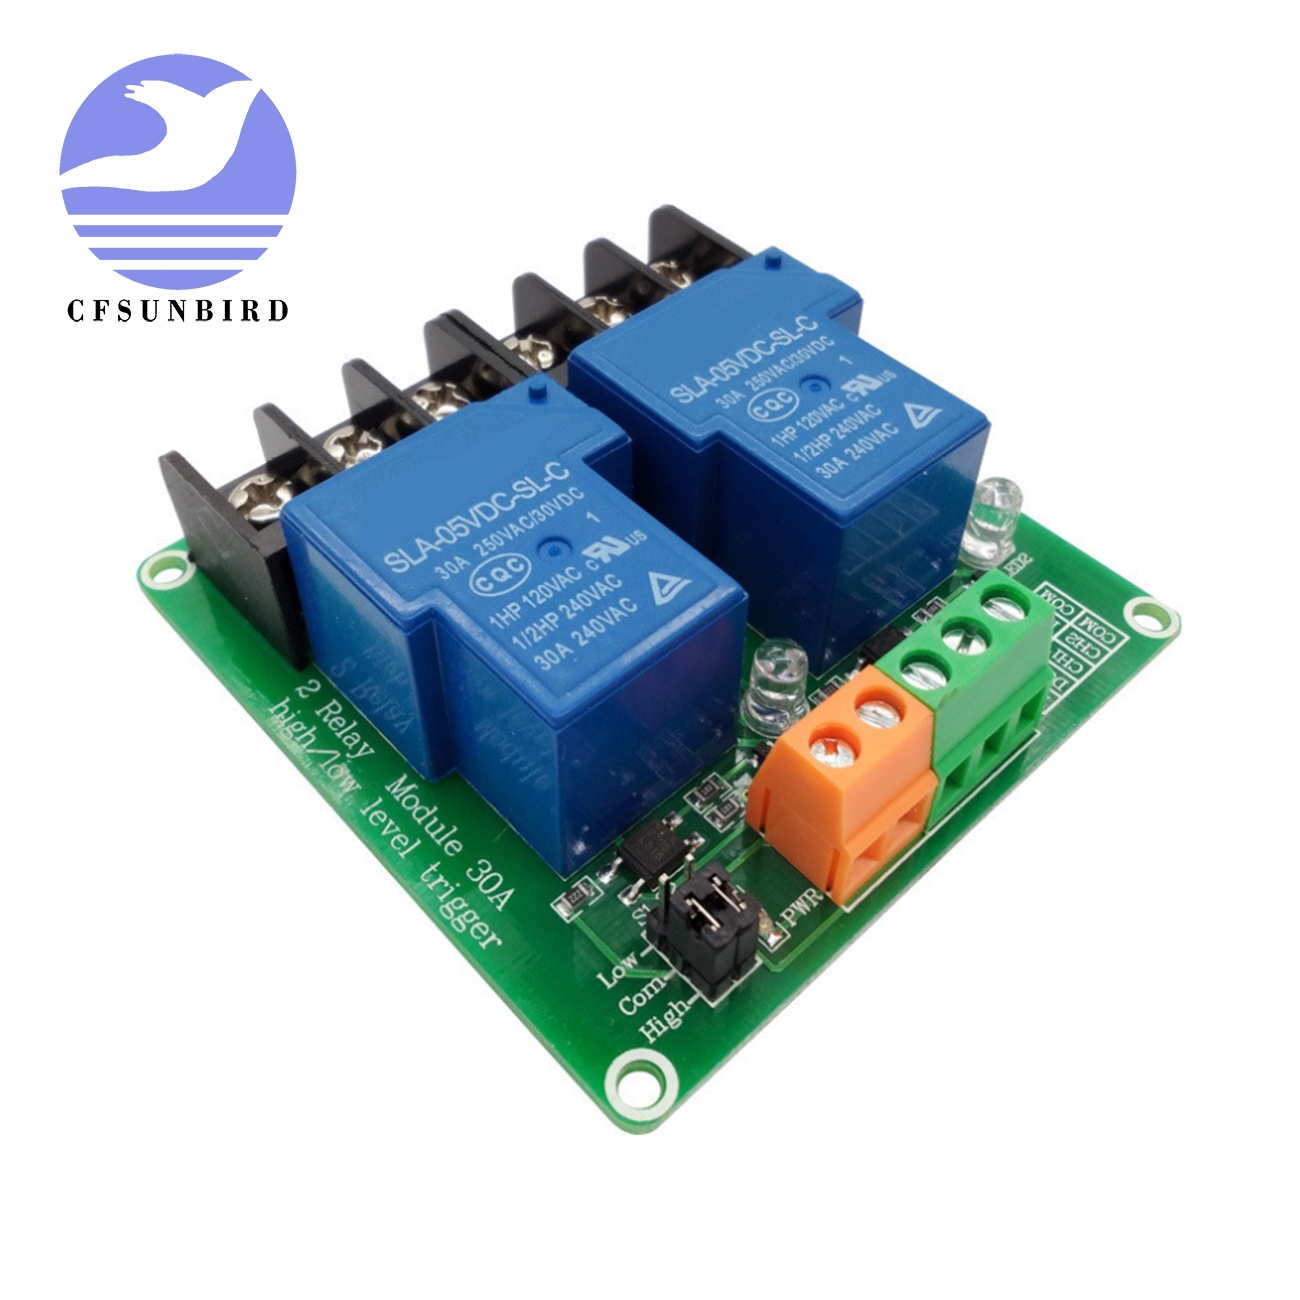 10PCS two 2 channel relay module 30A with optocoupler isolation 5V 12V 24V supports high and